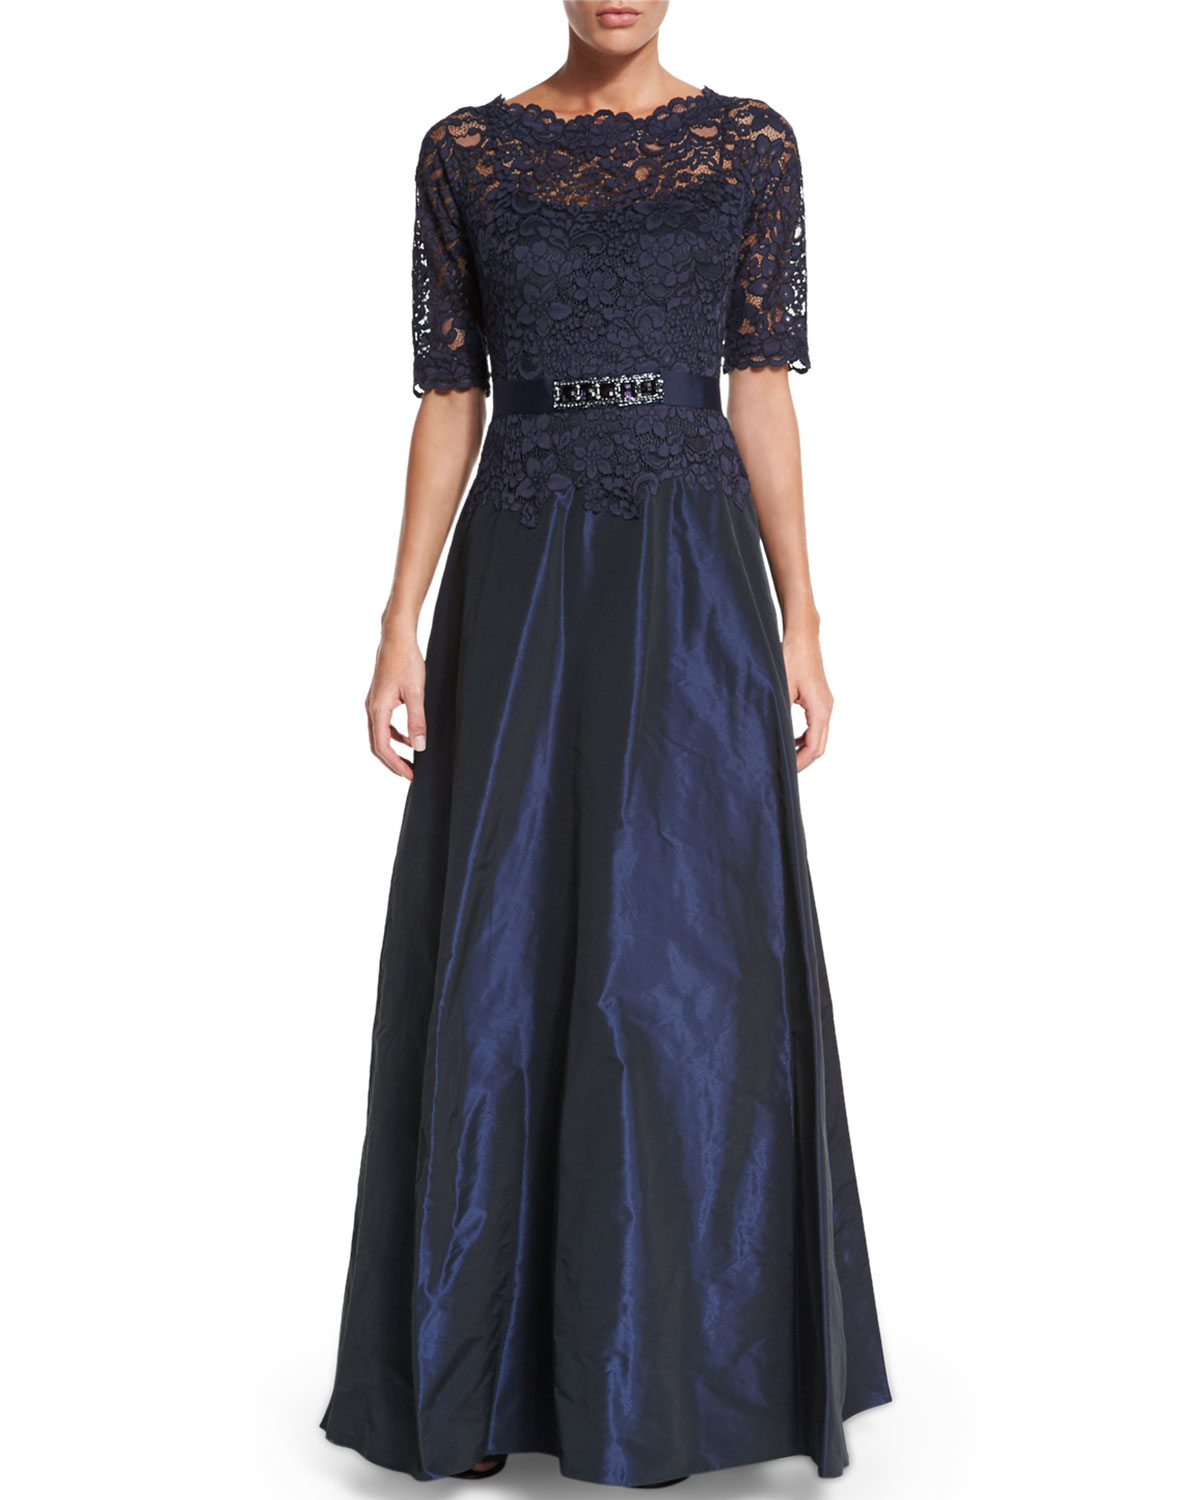 Teri jon Scalloped Lace Gown in Blue | Lyst